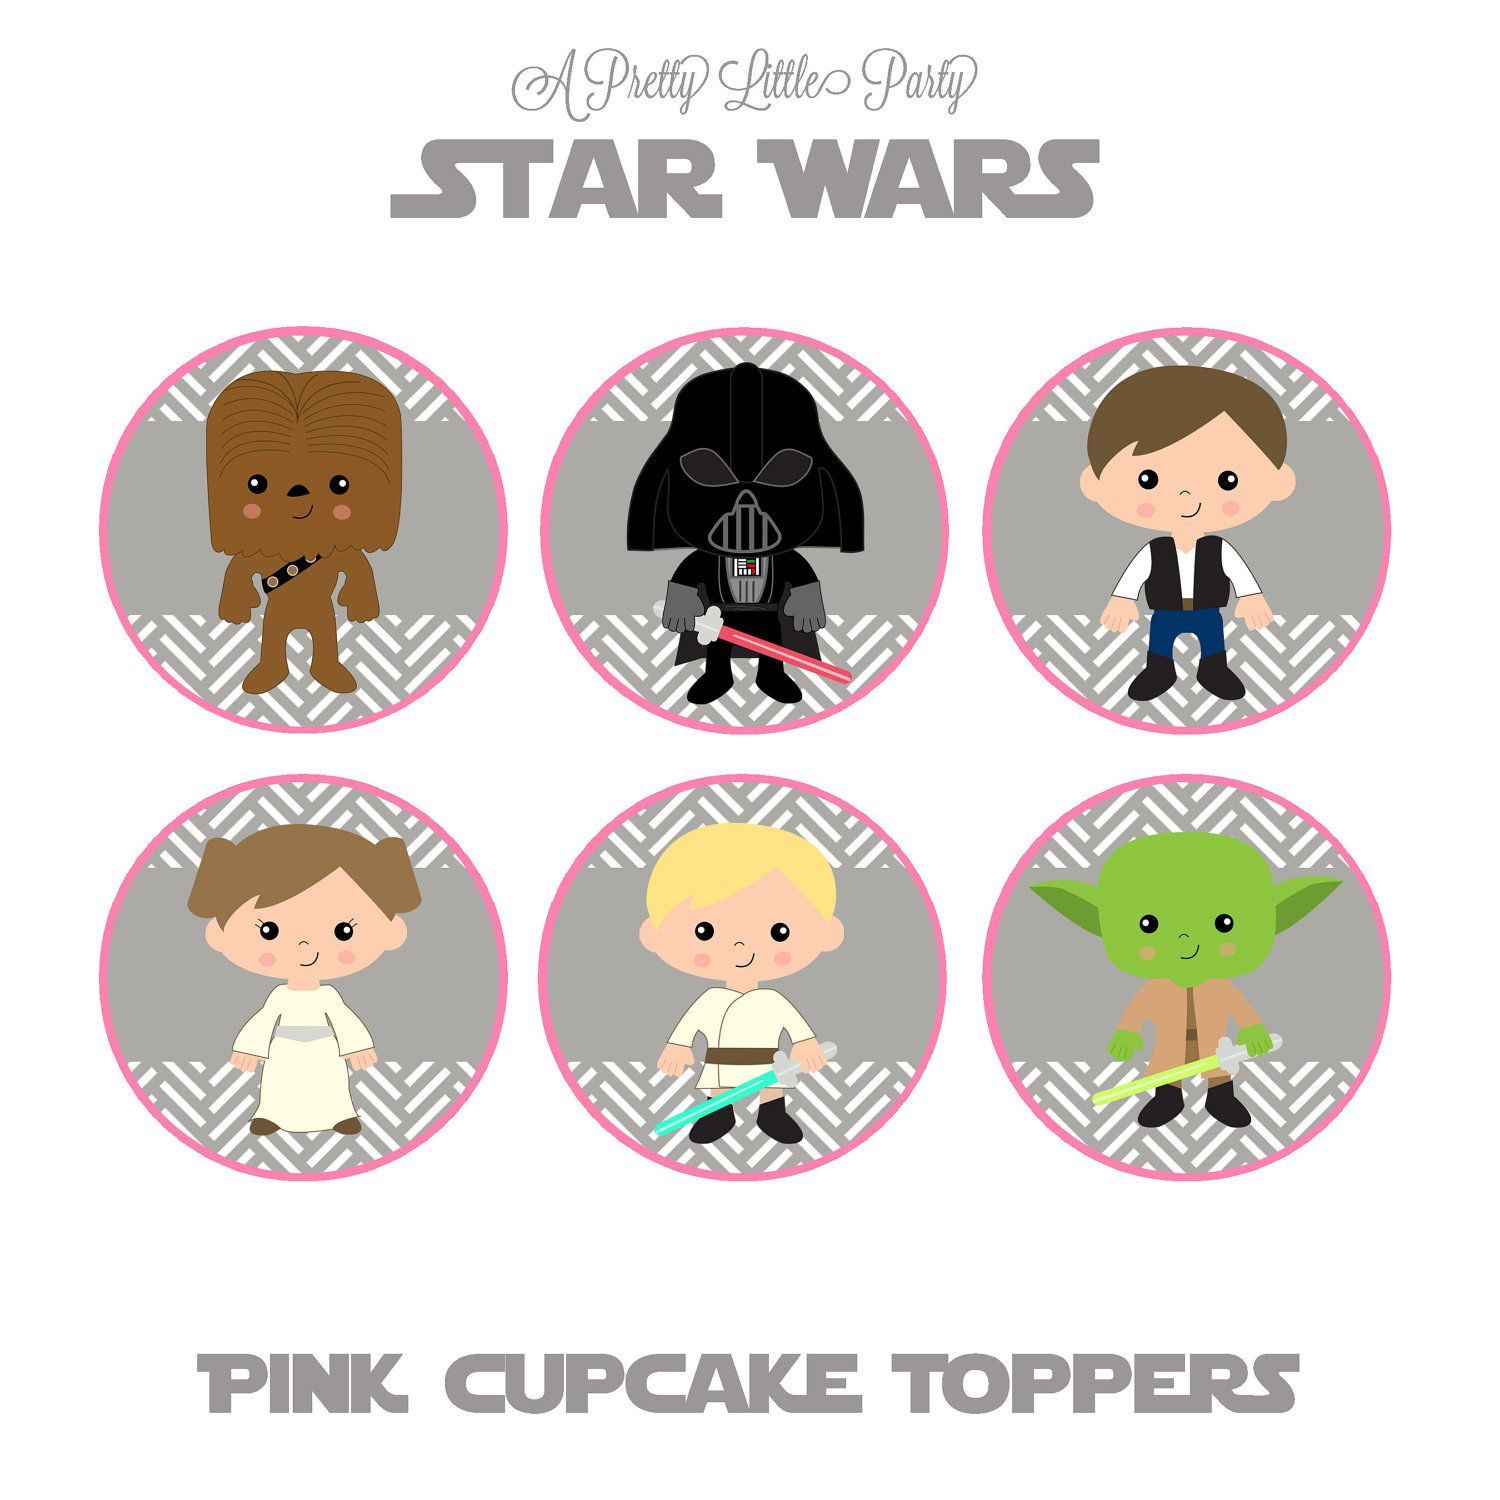 Star wars cupcakes toppers Party Ideas Pinterest